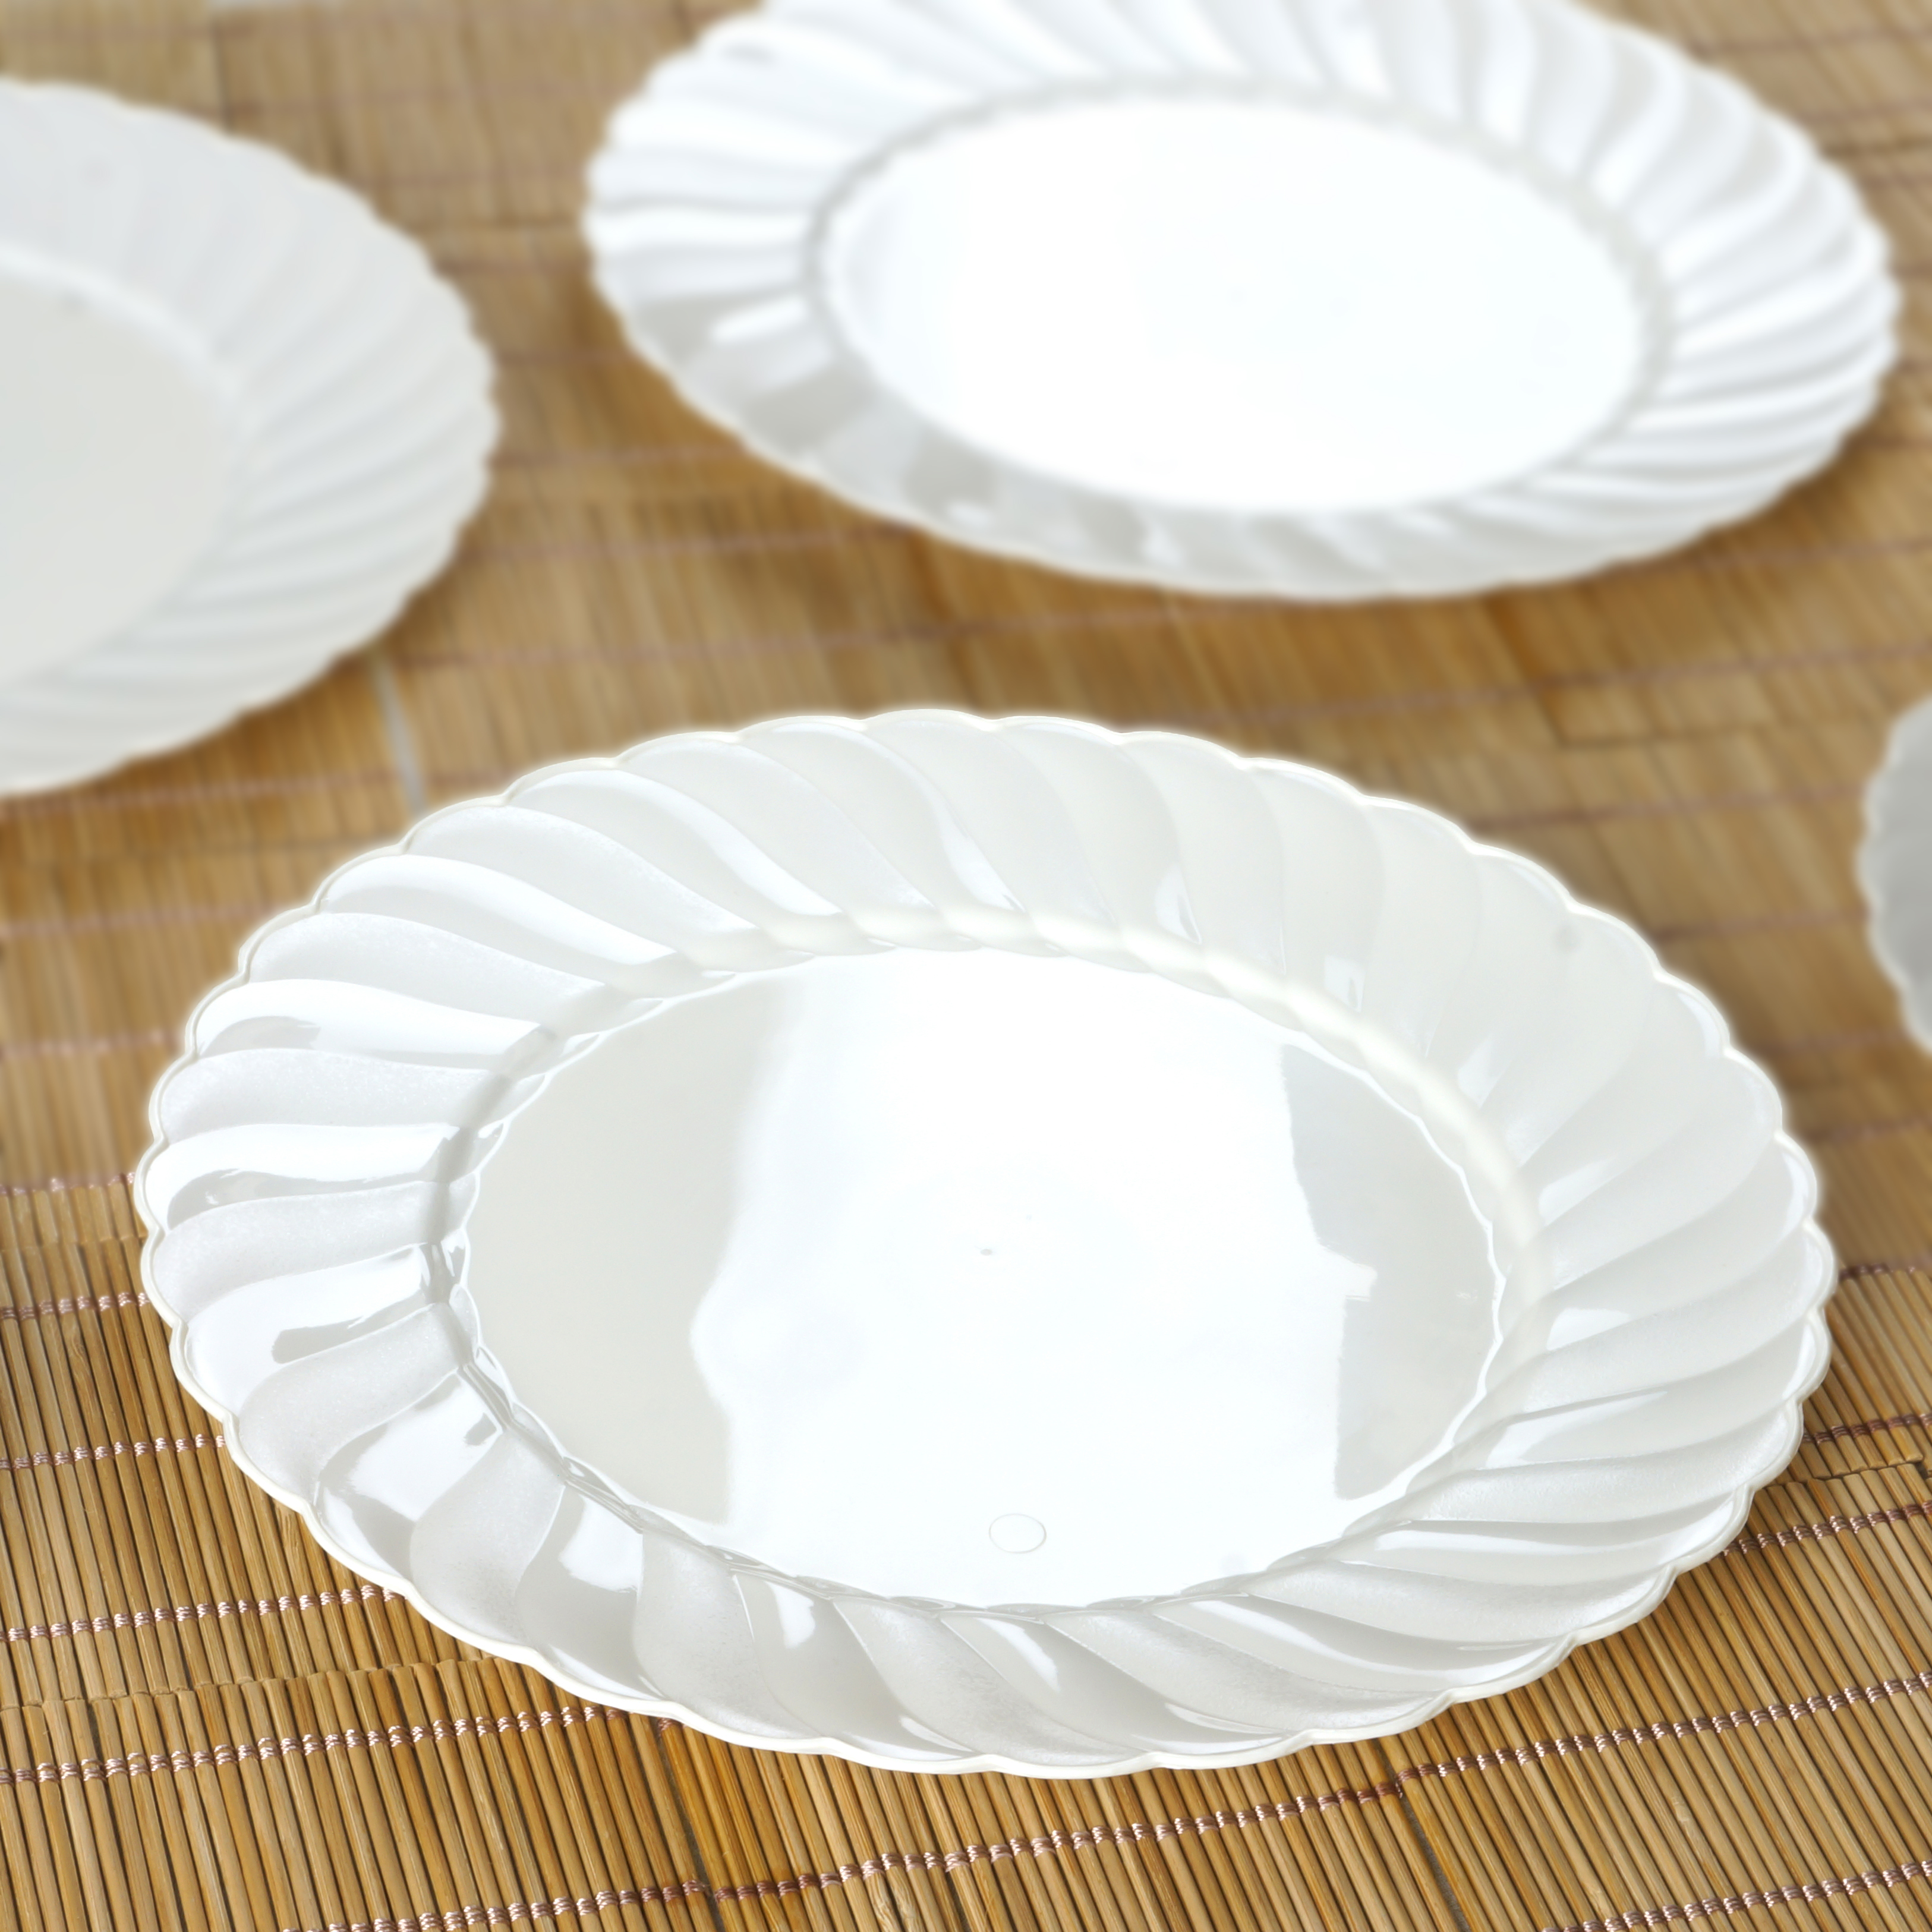 Plastic-FLAIRED-ROUND-10-034-DINNER-PLATES-Disposable- & Plastic FLAIRED ROUND 10